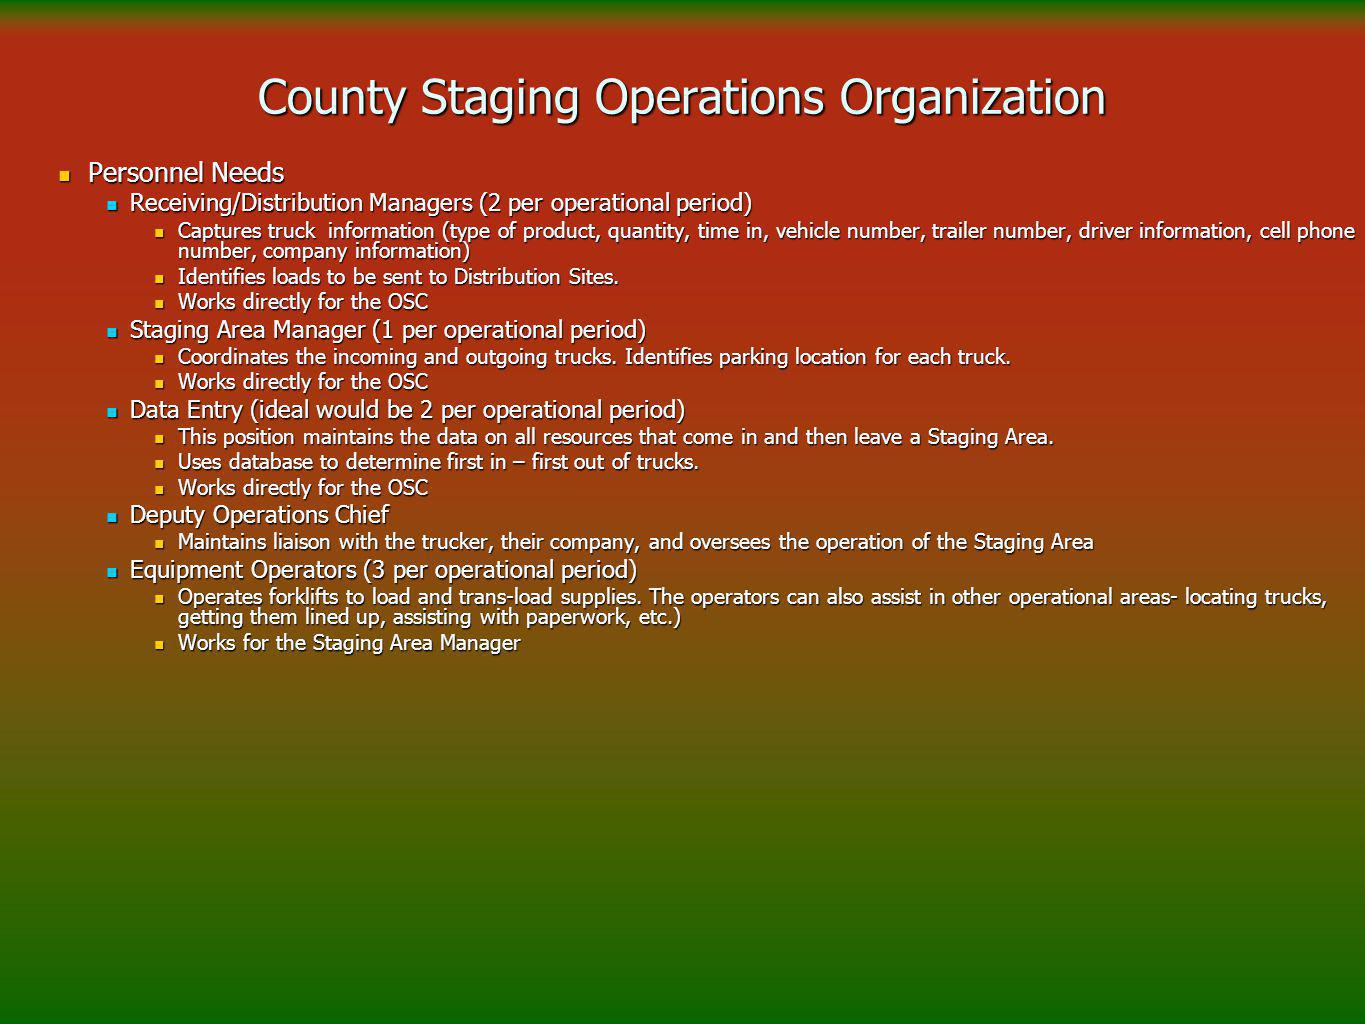 County Staging Operations Organization Personnel Needs Personnel Needs Receiving/Distribution Managers (2 per operational period) Receiving/Distribution Managers (2 per operational period) Captures truck information (type of product, quantity, time in, vehicle number, trailer number, driver information, cell phone number, company information) Captures truck information (type of product, quantity, time in, vehicle number, trailer number, driver information, cell phone number, company information) Identifies loads to be sent to Distribution Sites.